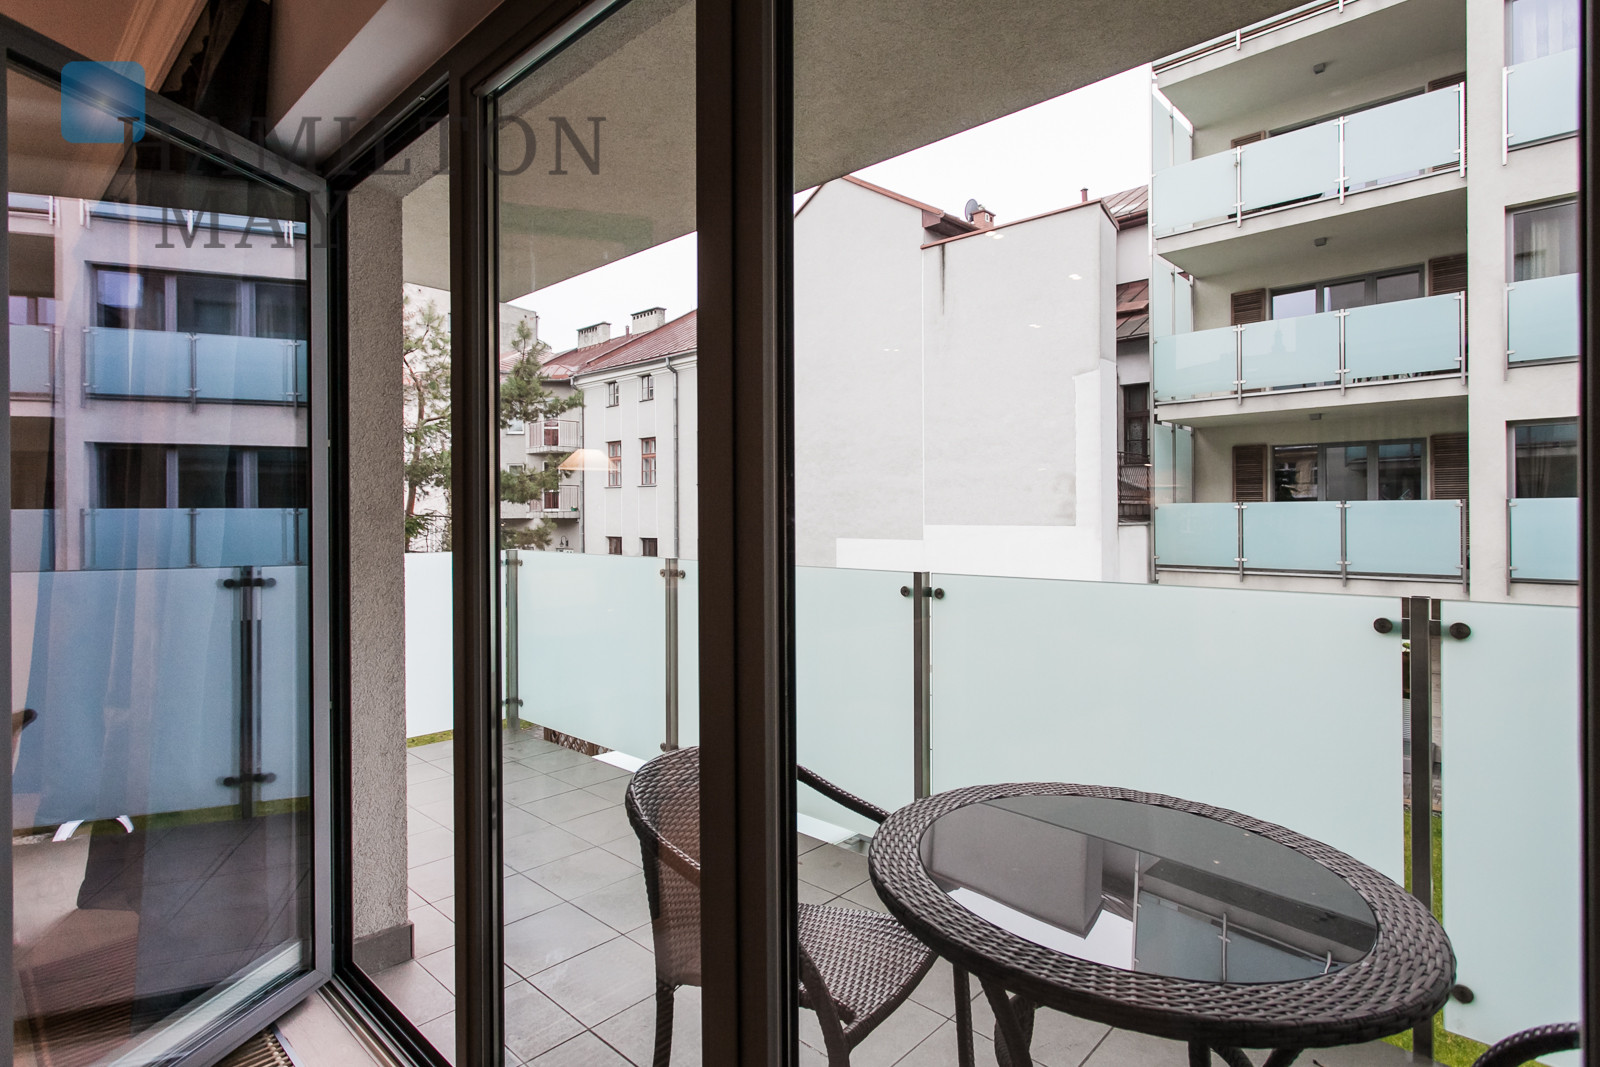 Exclusive 'Rome' apartment in a modern, discreet townhouse in the Kazimierz district Krakow for sale